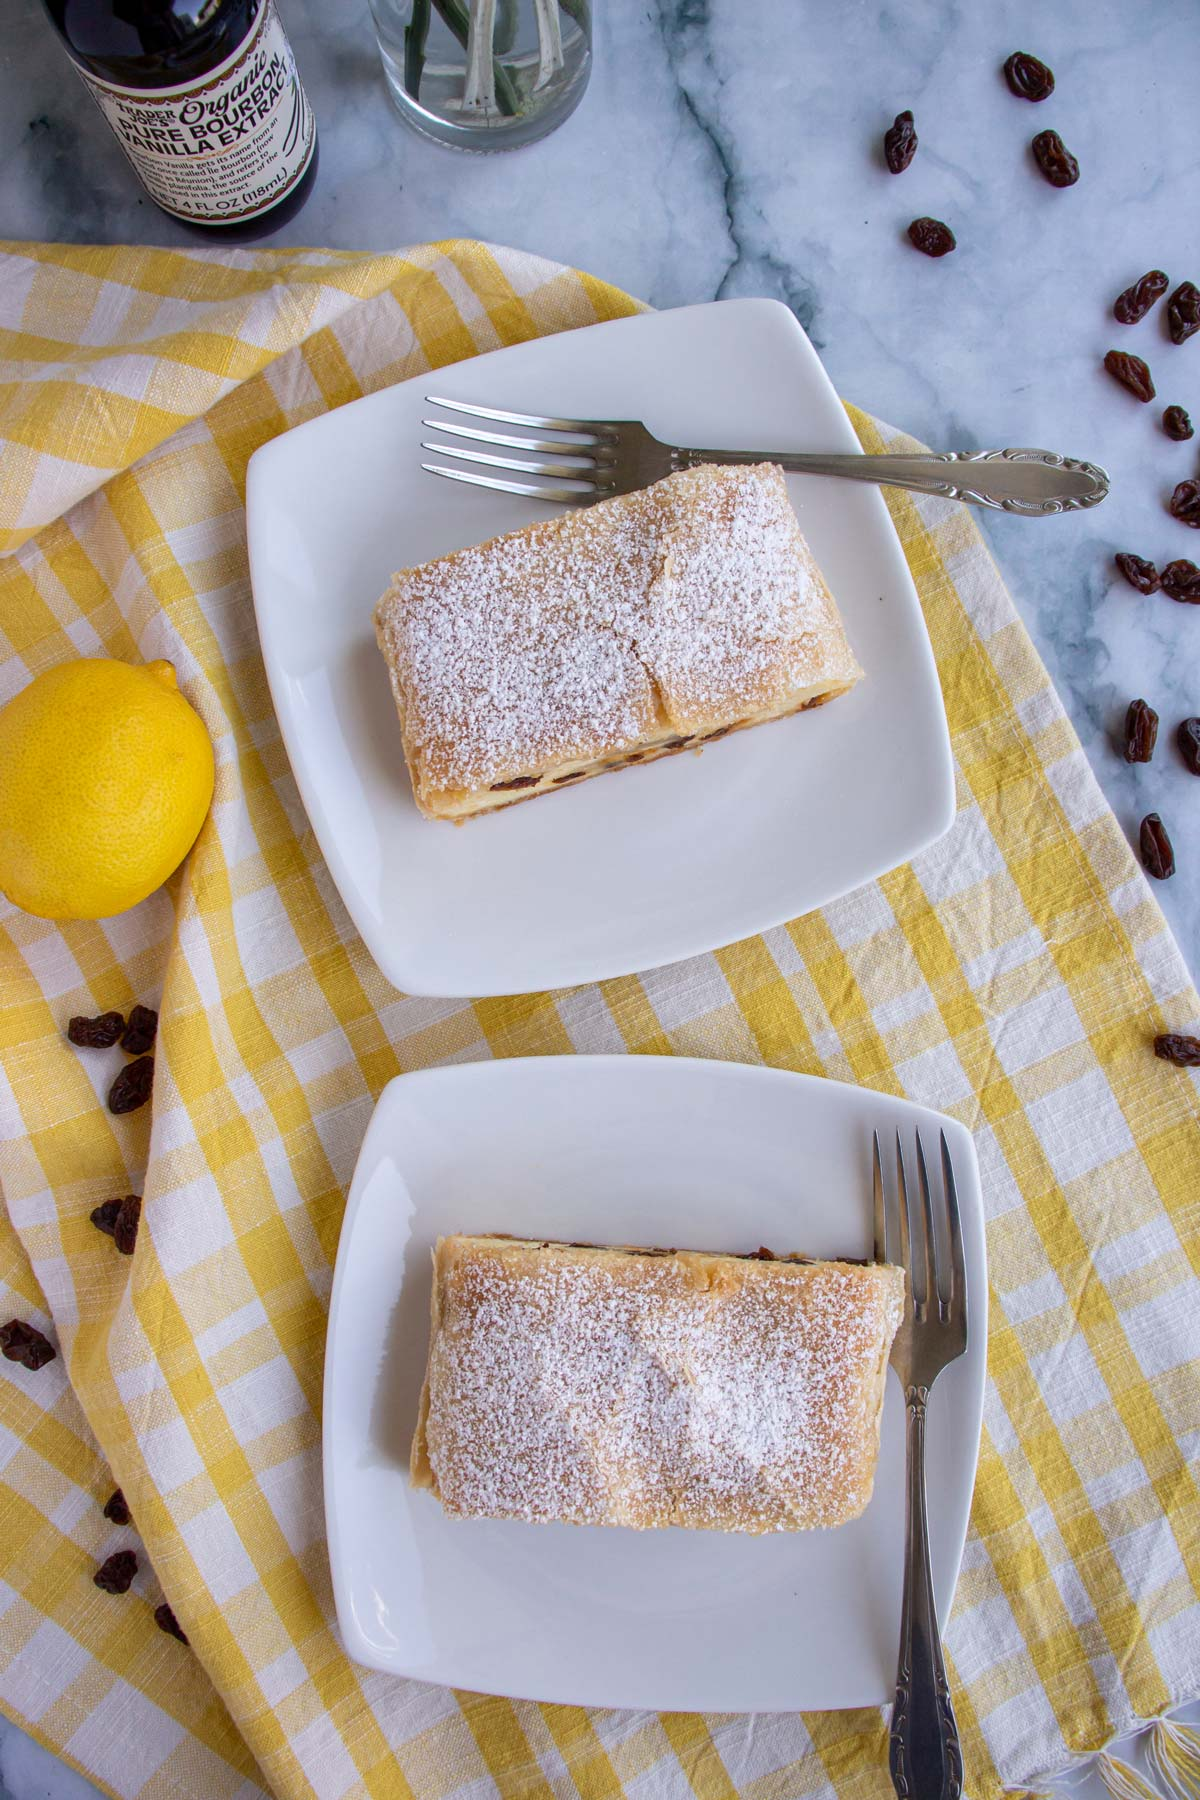 Two slices of powdered sugar topped strudel on white square plates on a yellow gingham towel.